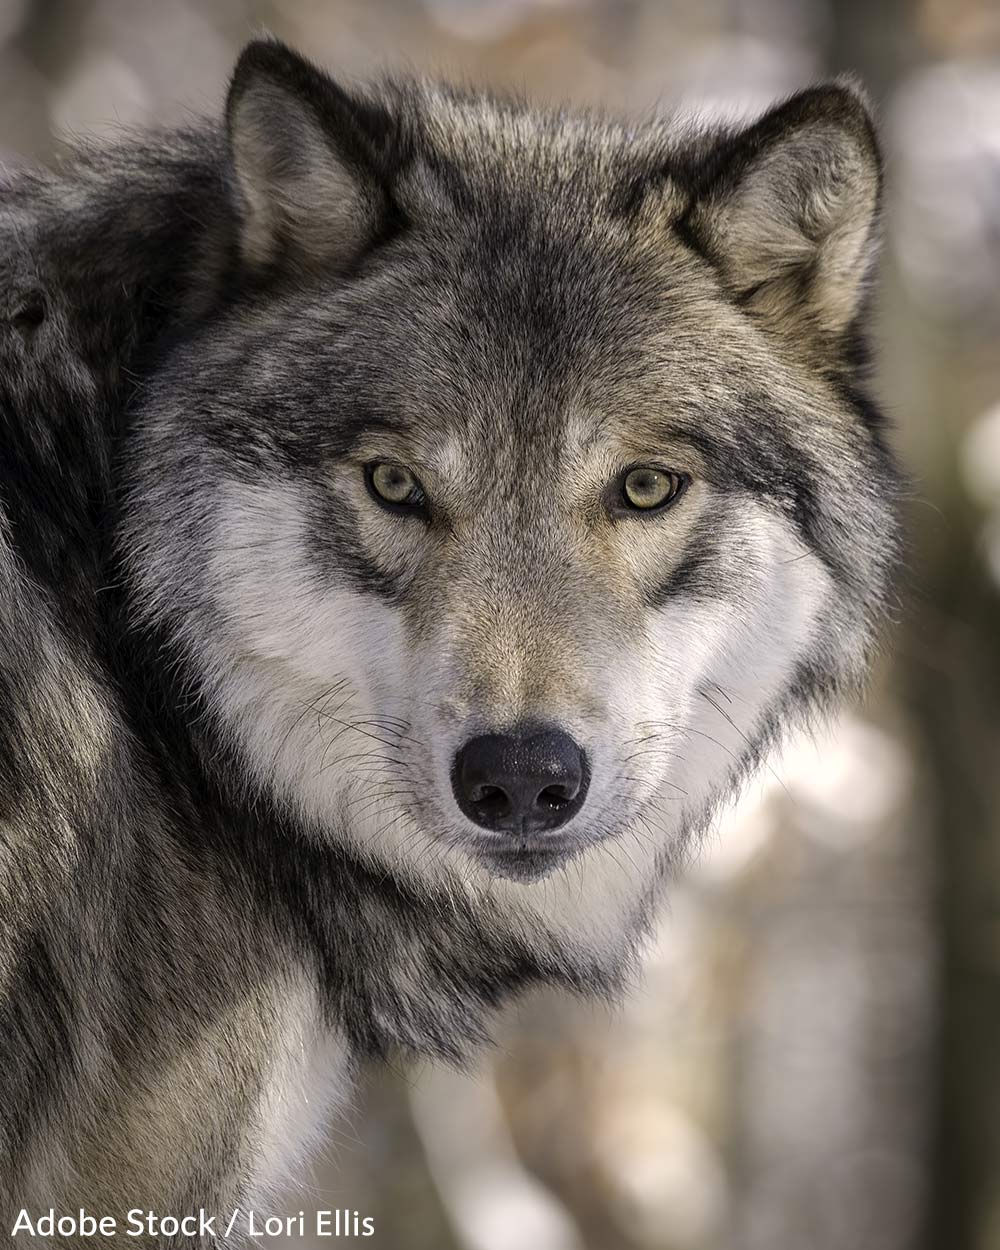 The state of Idaho wants to bring wolf populations down to 150 animals.